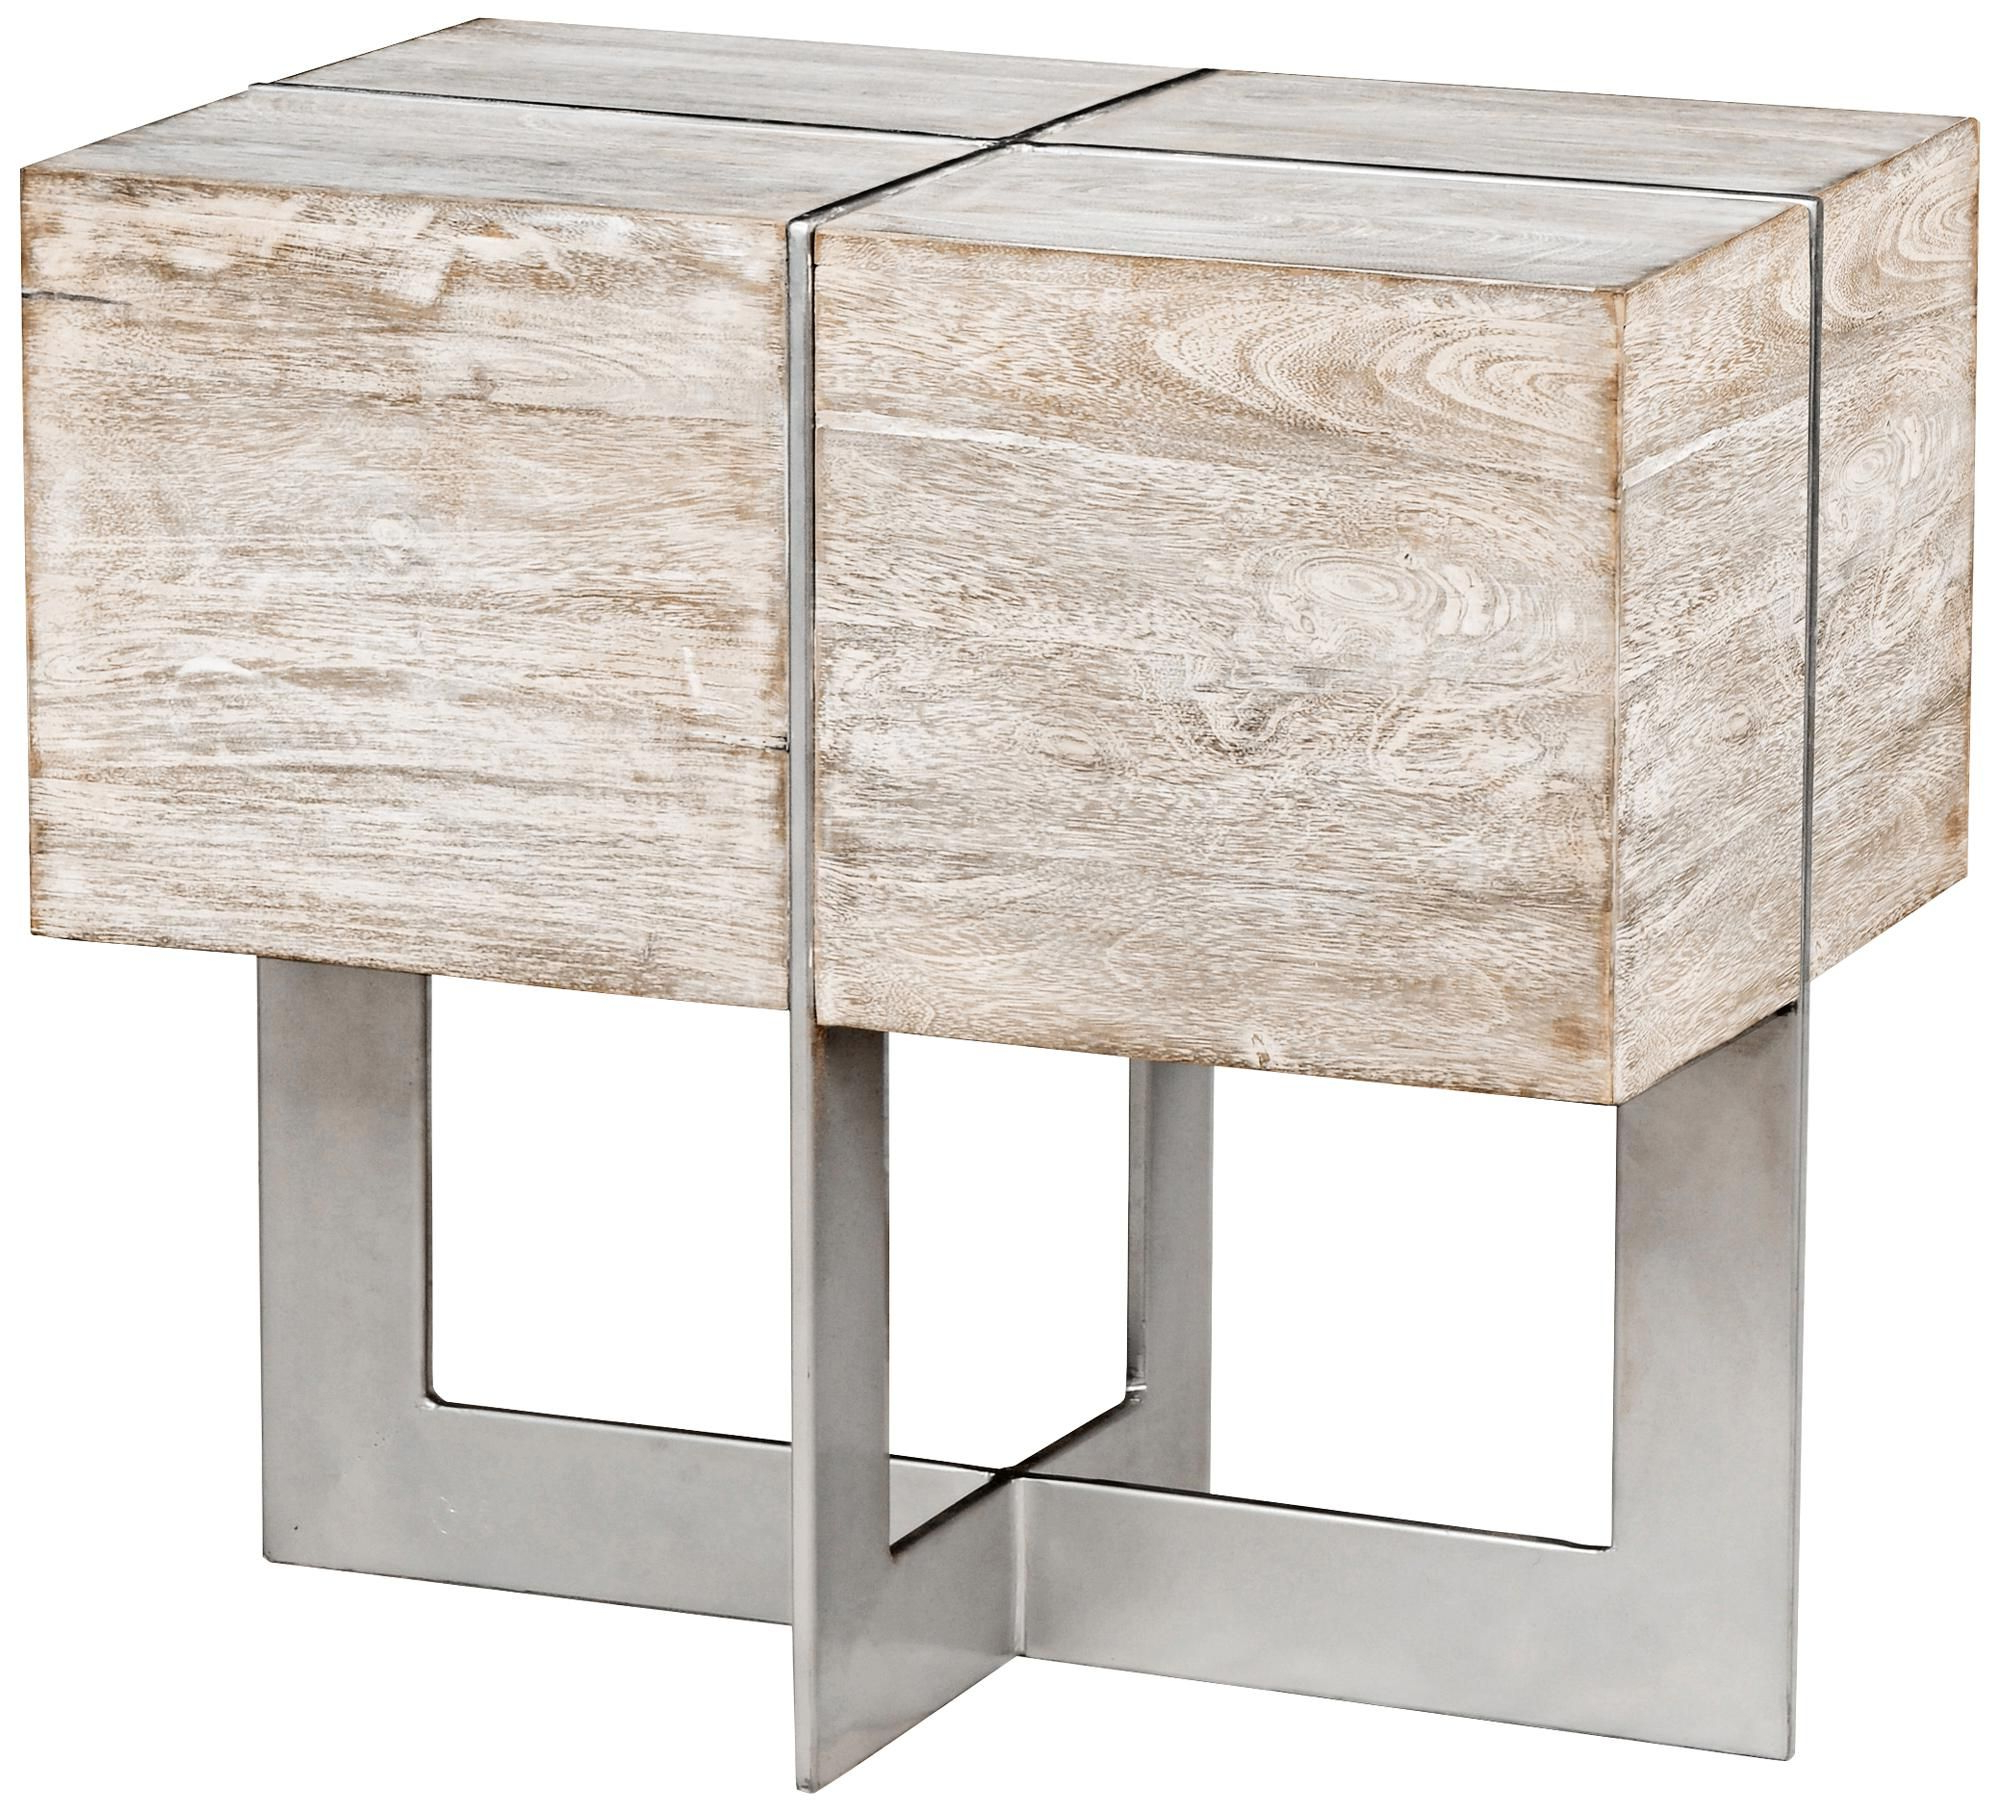 Desmond White Wash Solid Mango Wood Block End Table | Home Accents In Parsons Walnut Top & Dark Steel Base 48x16 Console Tables (View 12 of 20)